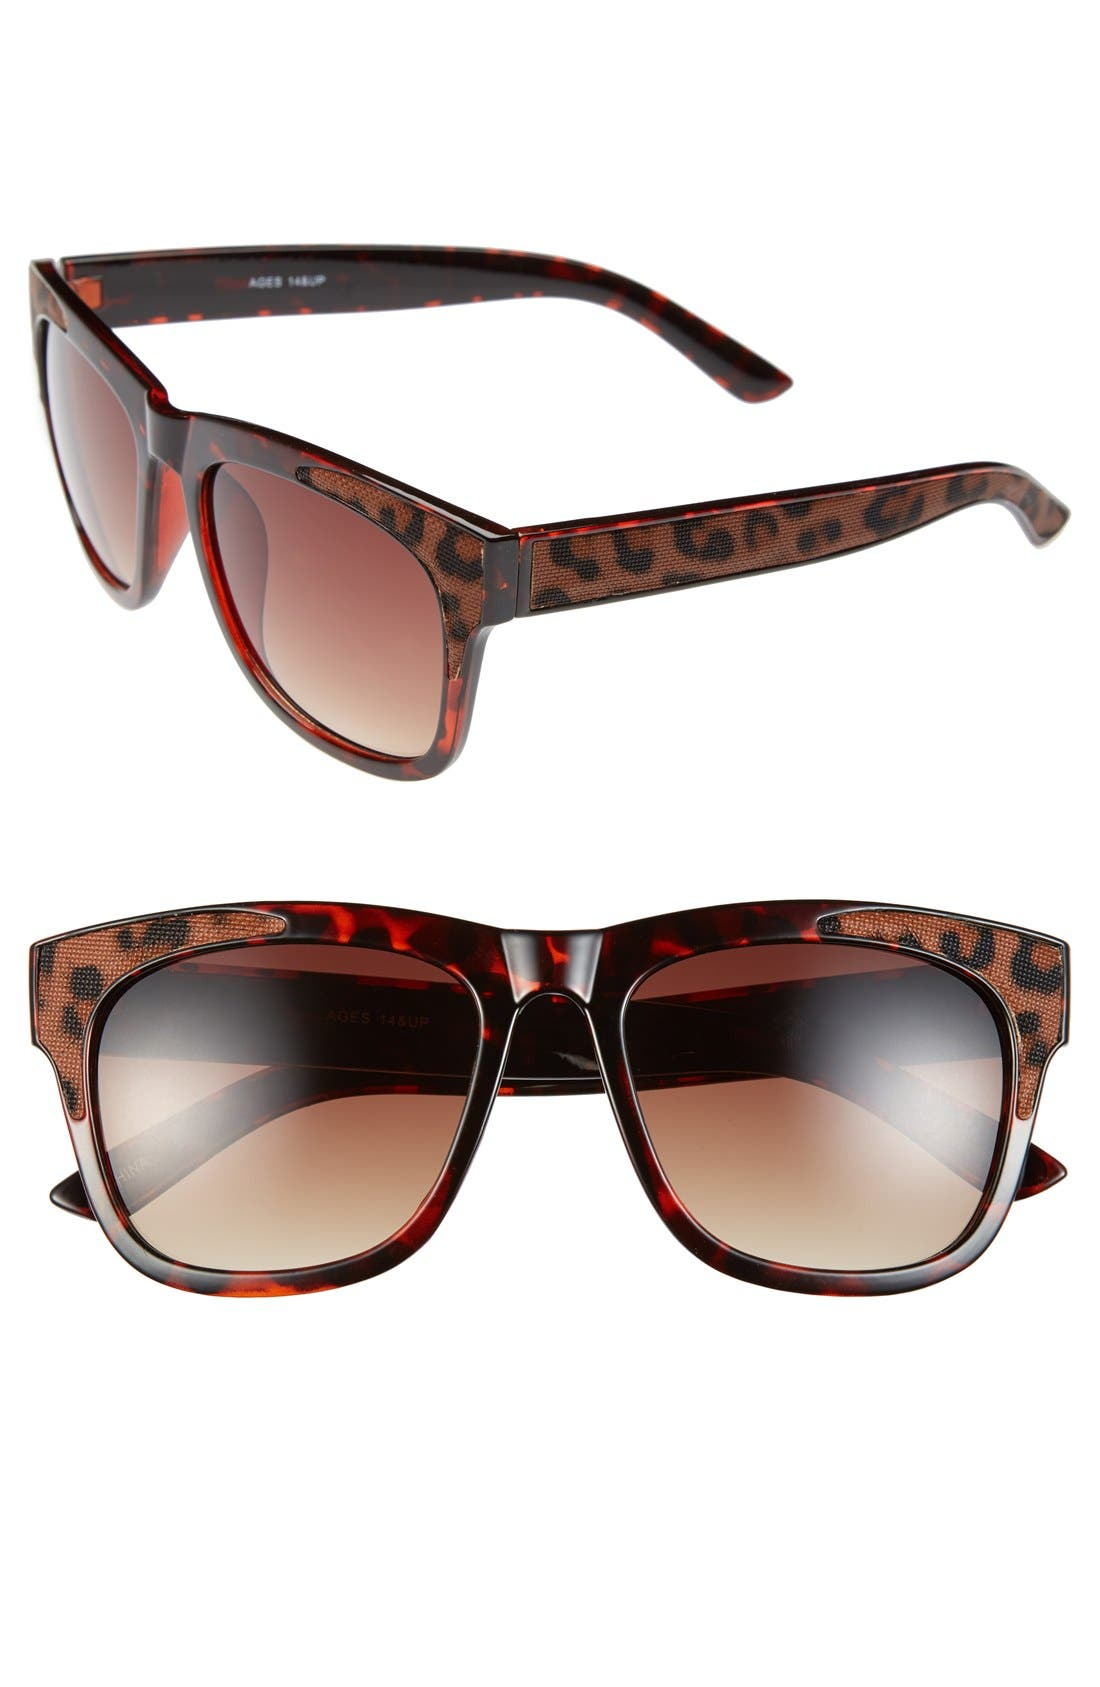 Main Image - FE NY 'Animal' 53mm Sunglasses